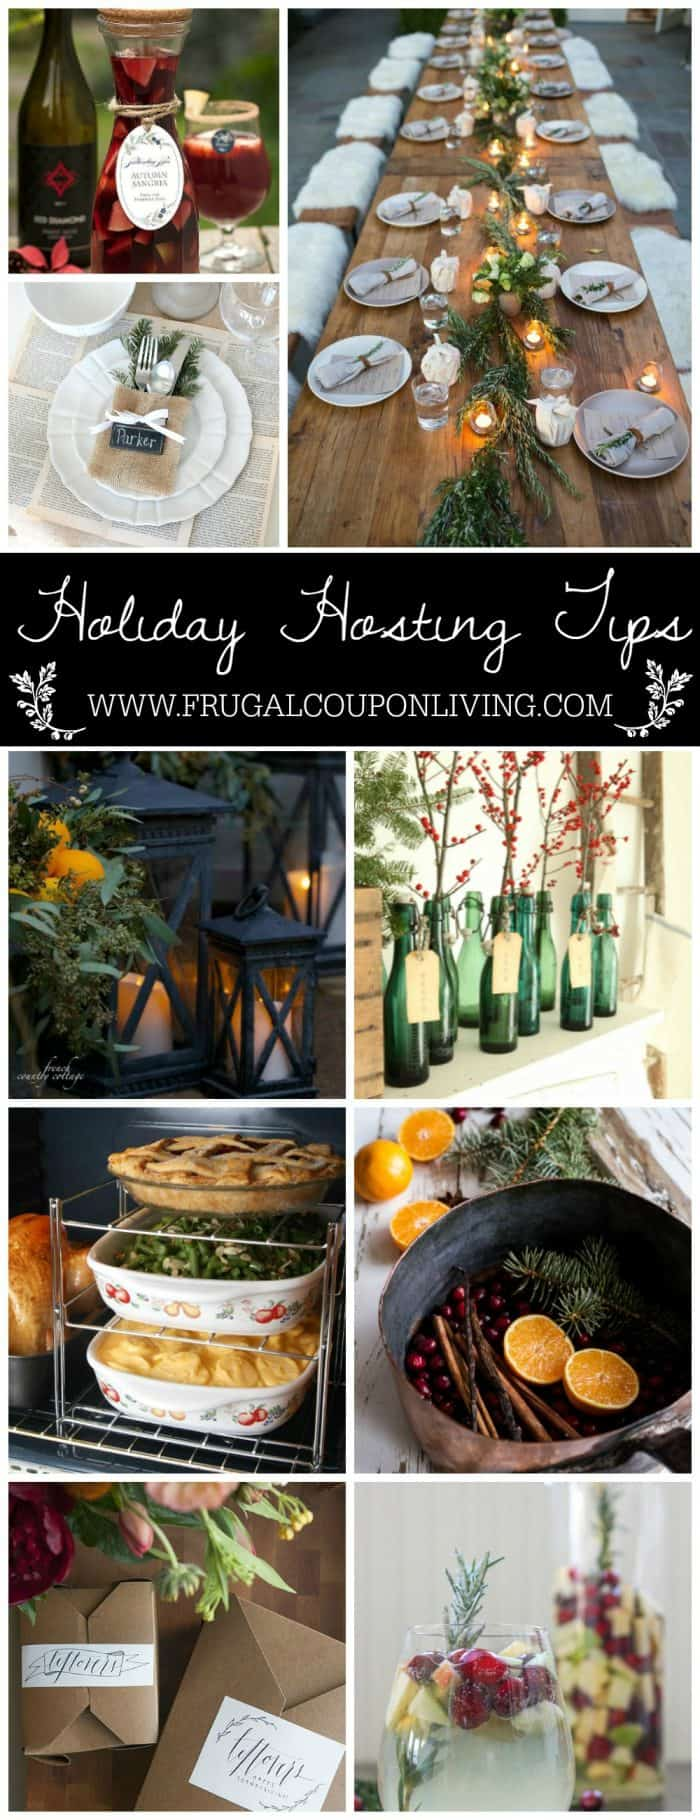 Party and Hosting Tips for the Holidays